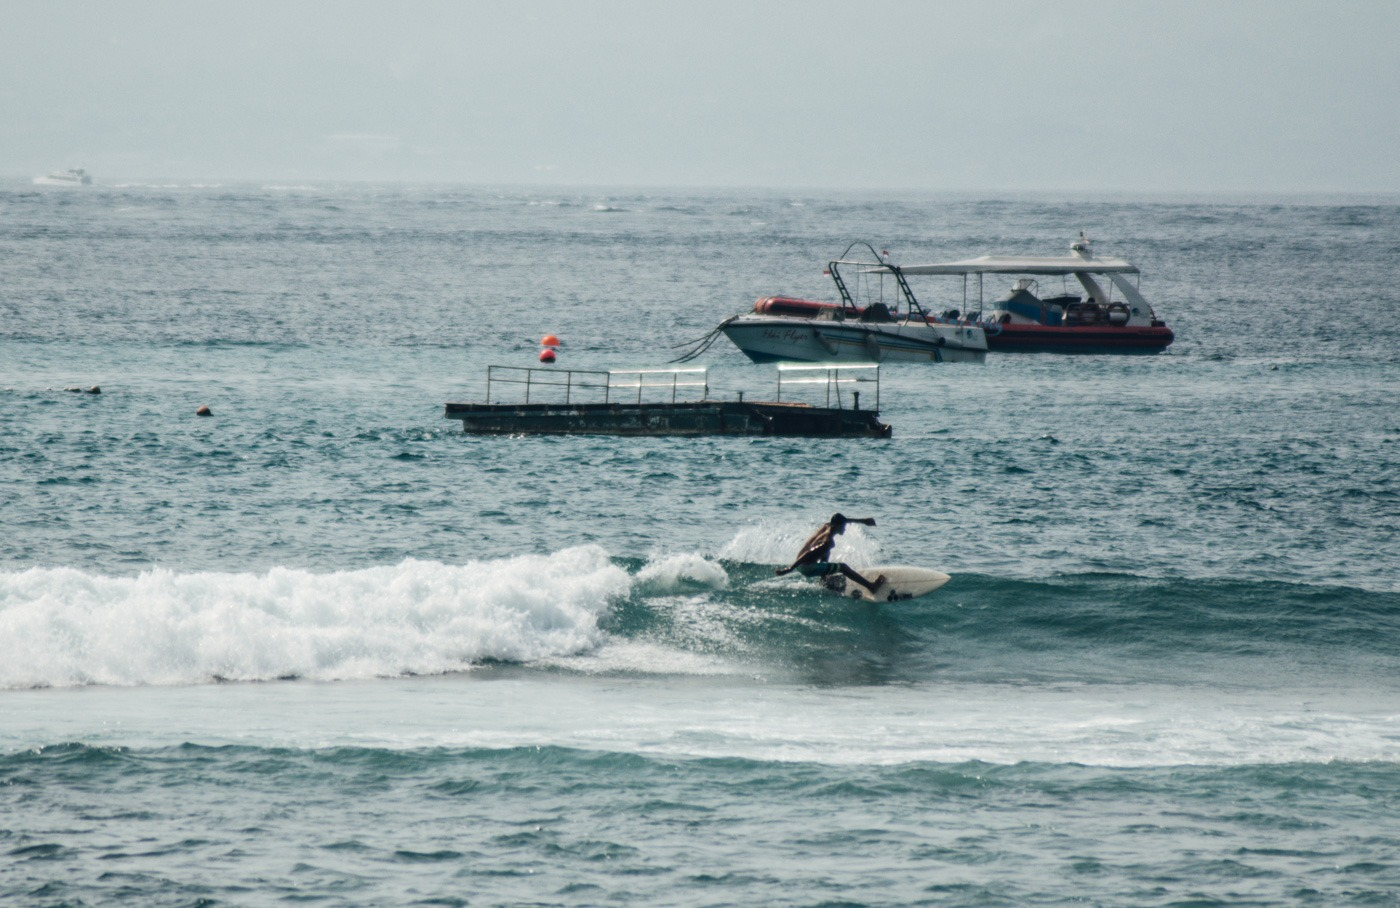 Surfing on Nusa Lembongan - The tiny island with crystal